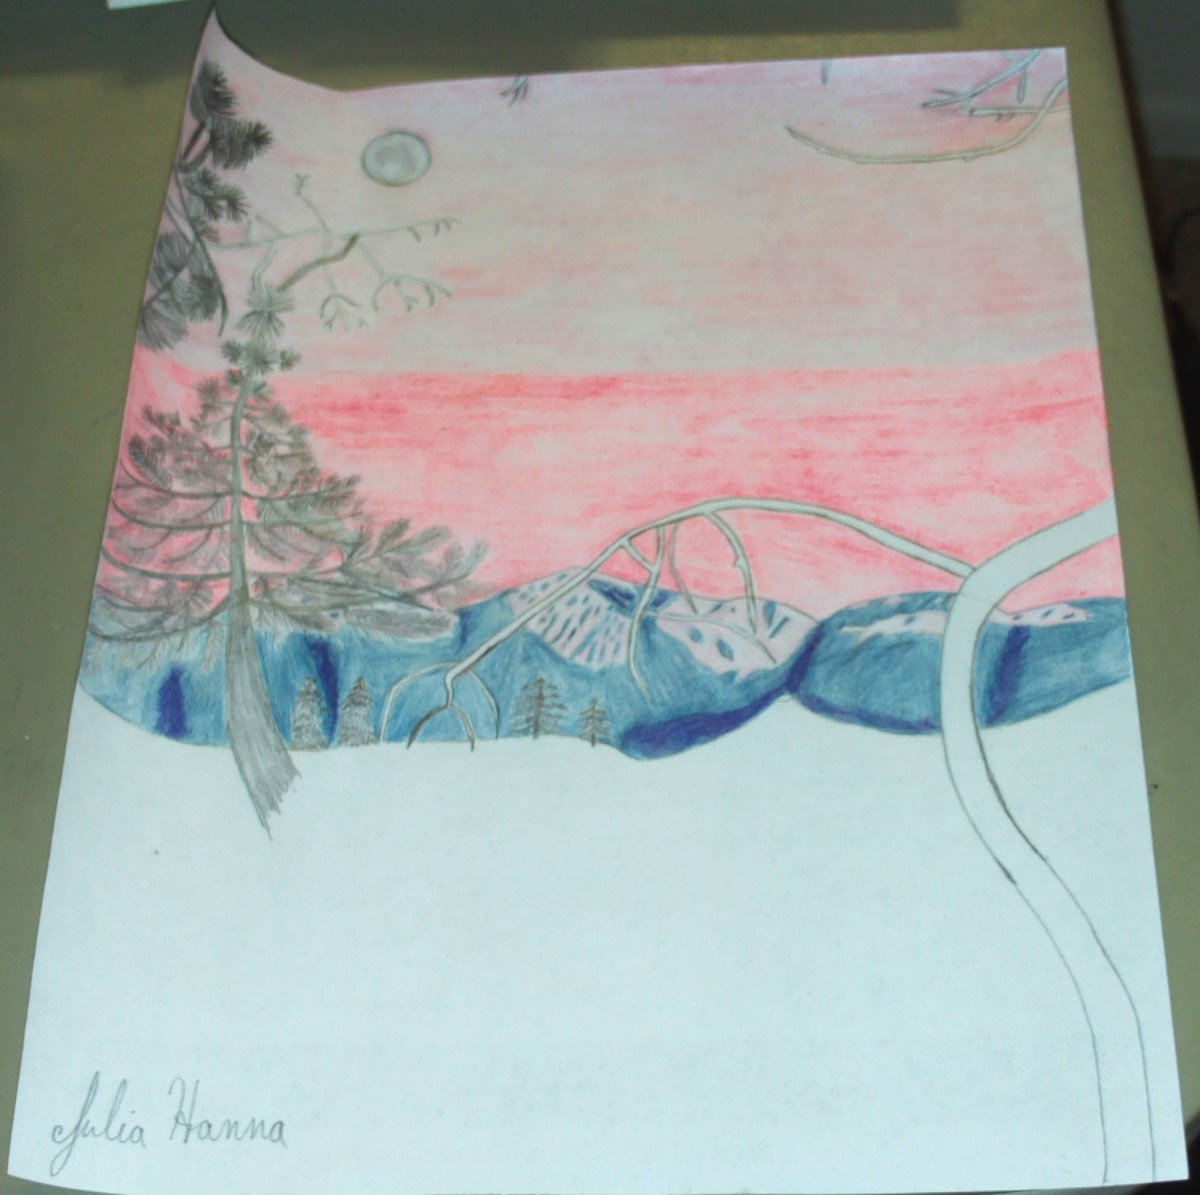 I used a two shades of gray colored pencils to create the moon in my sunset scene.